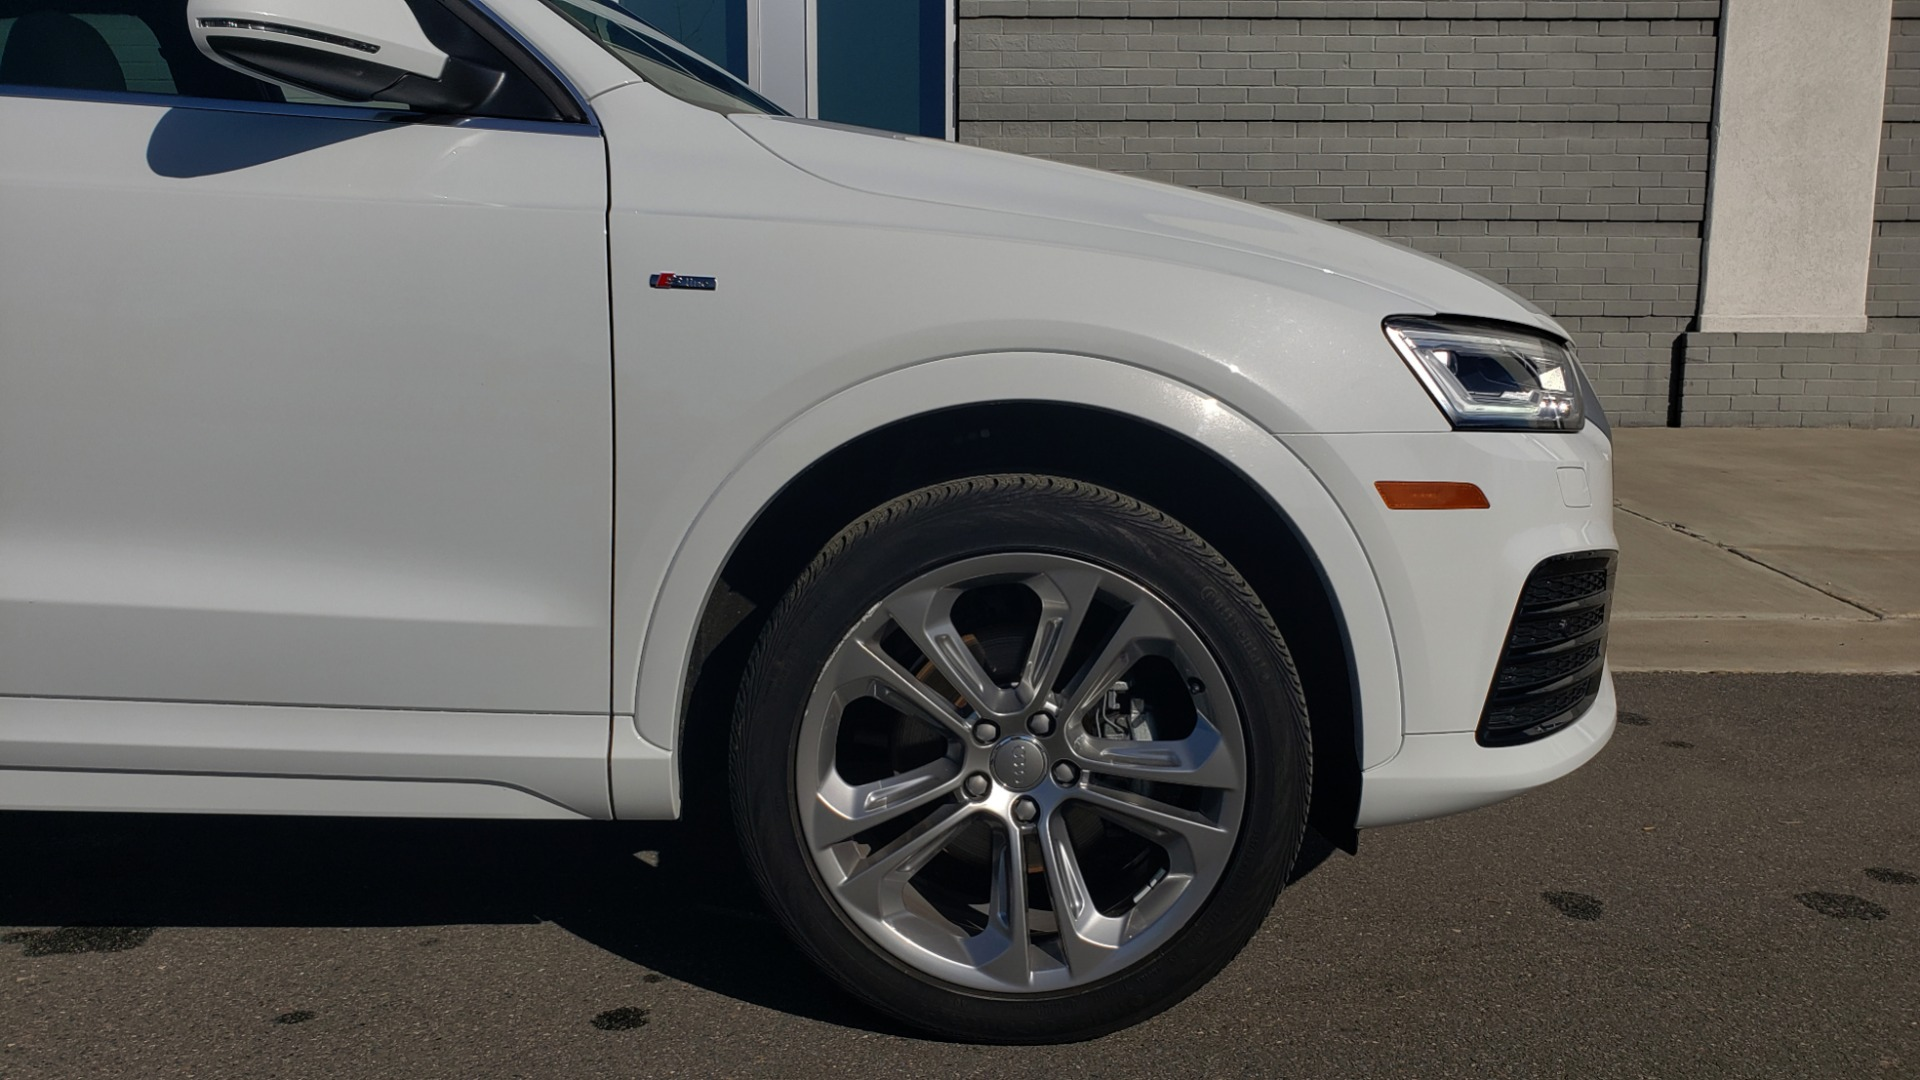 Used 2018 Audi Q3 PREMIUM PLUS 2.0T / SPORT PKG / NAV / BOSE / SUNROOF / REARVIEW for sale Sold at Formula Imports in Charlotte NC 28227 74